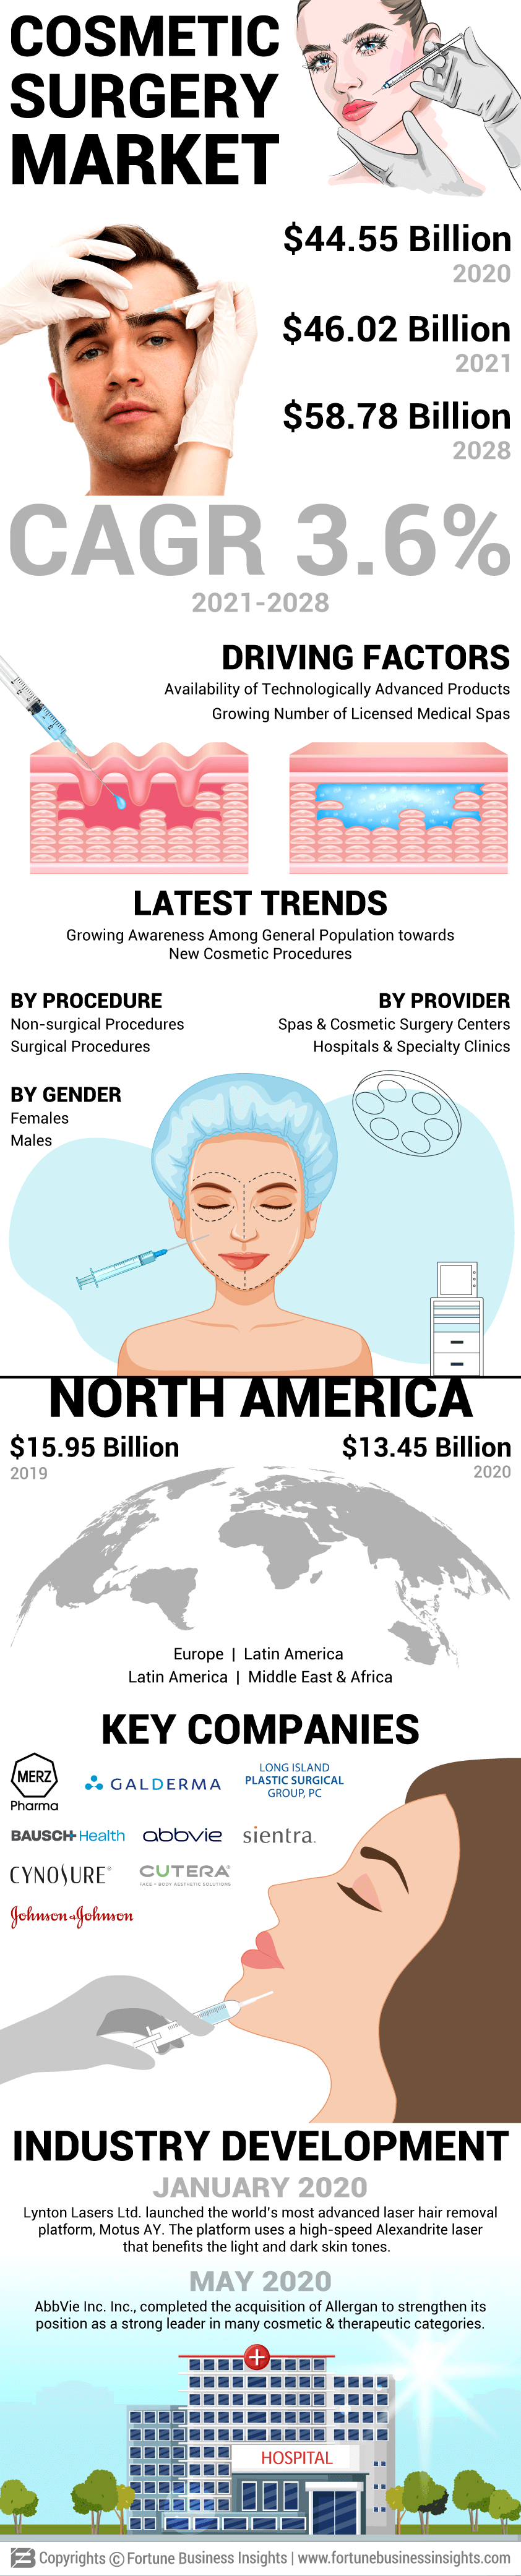 Cosmetic Surgery Market